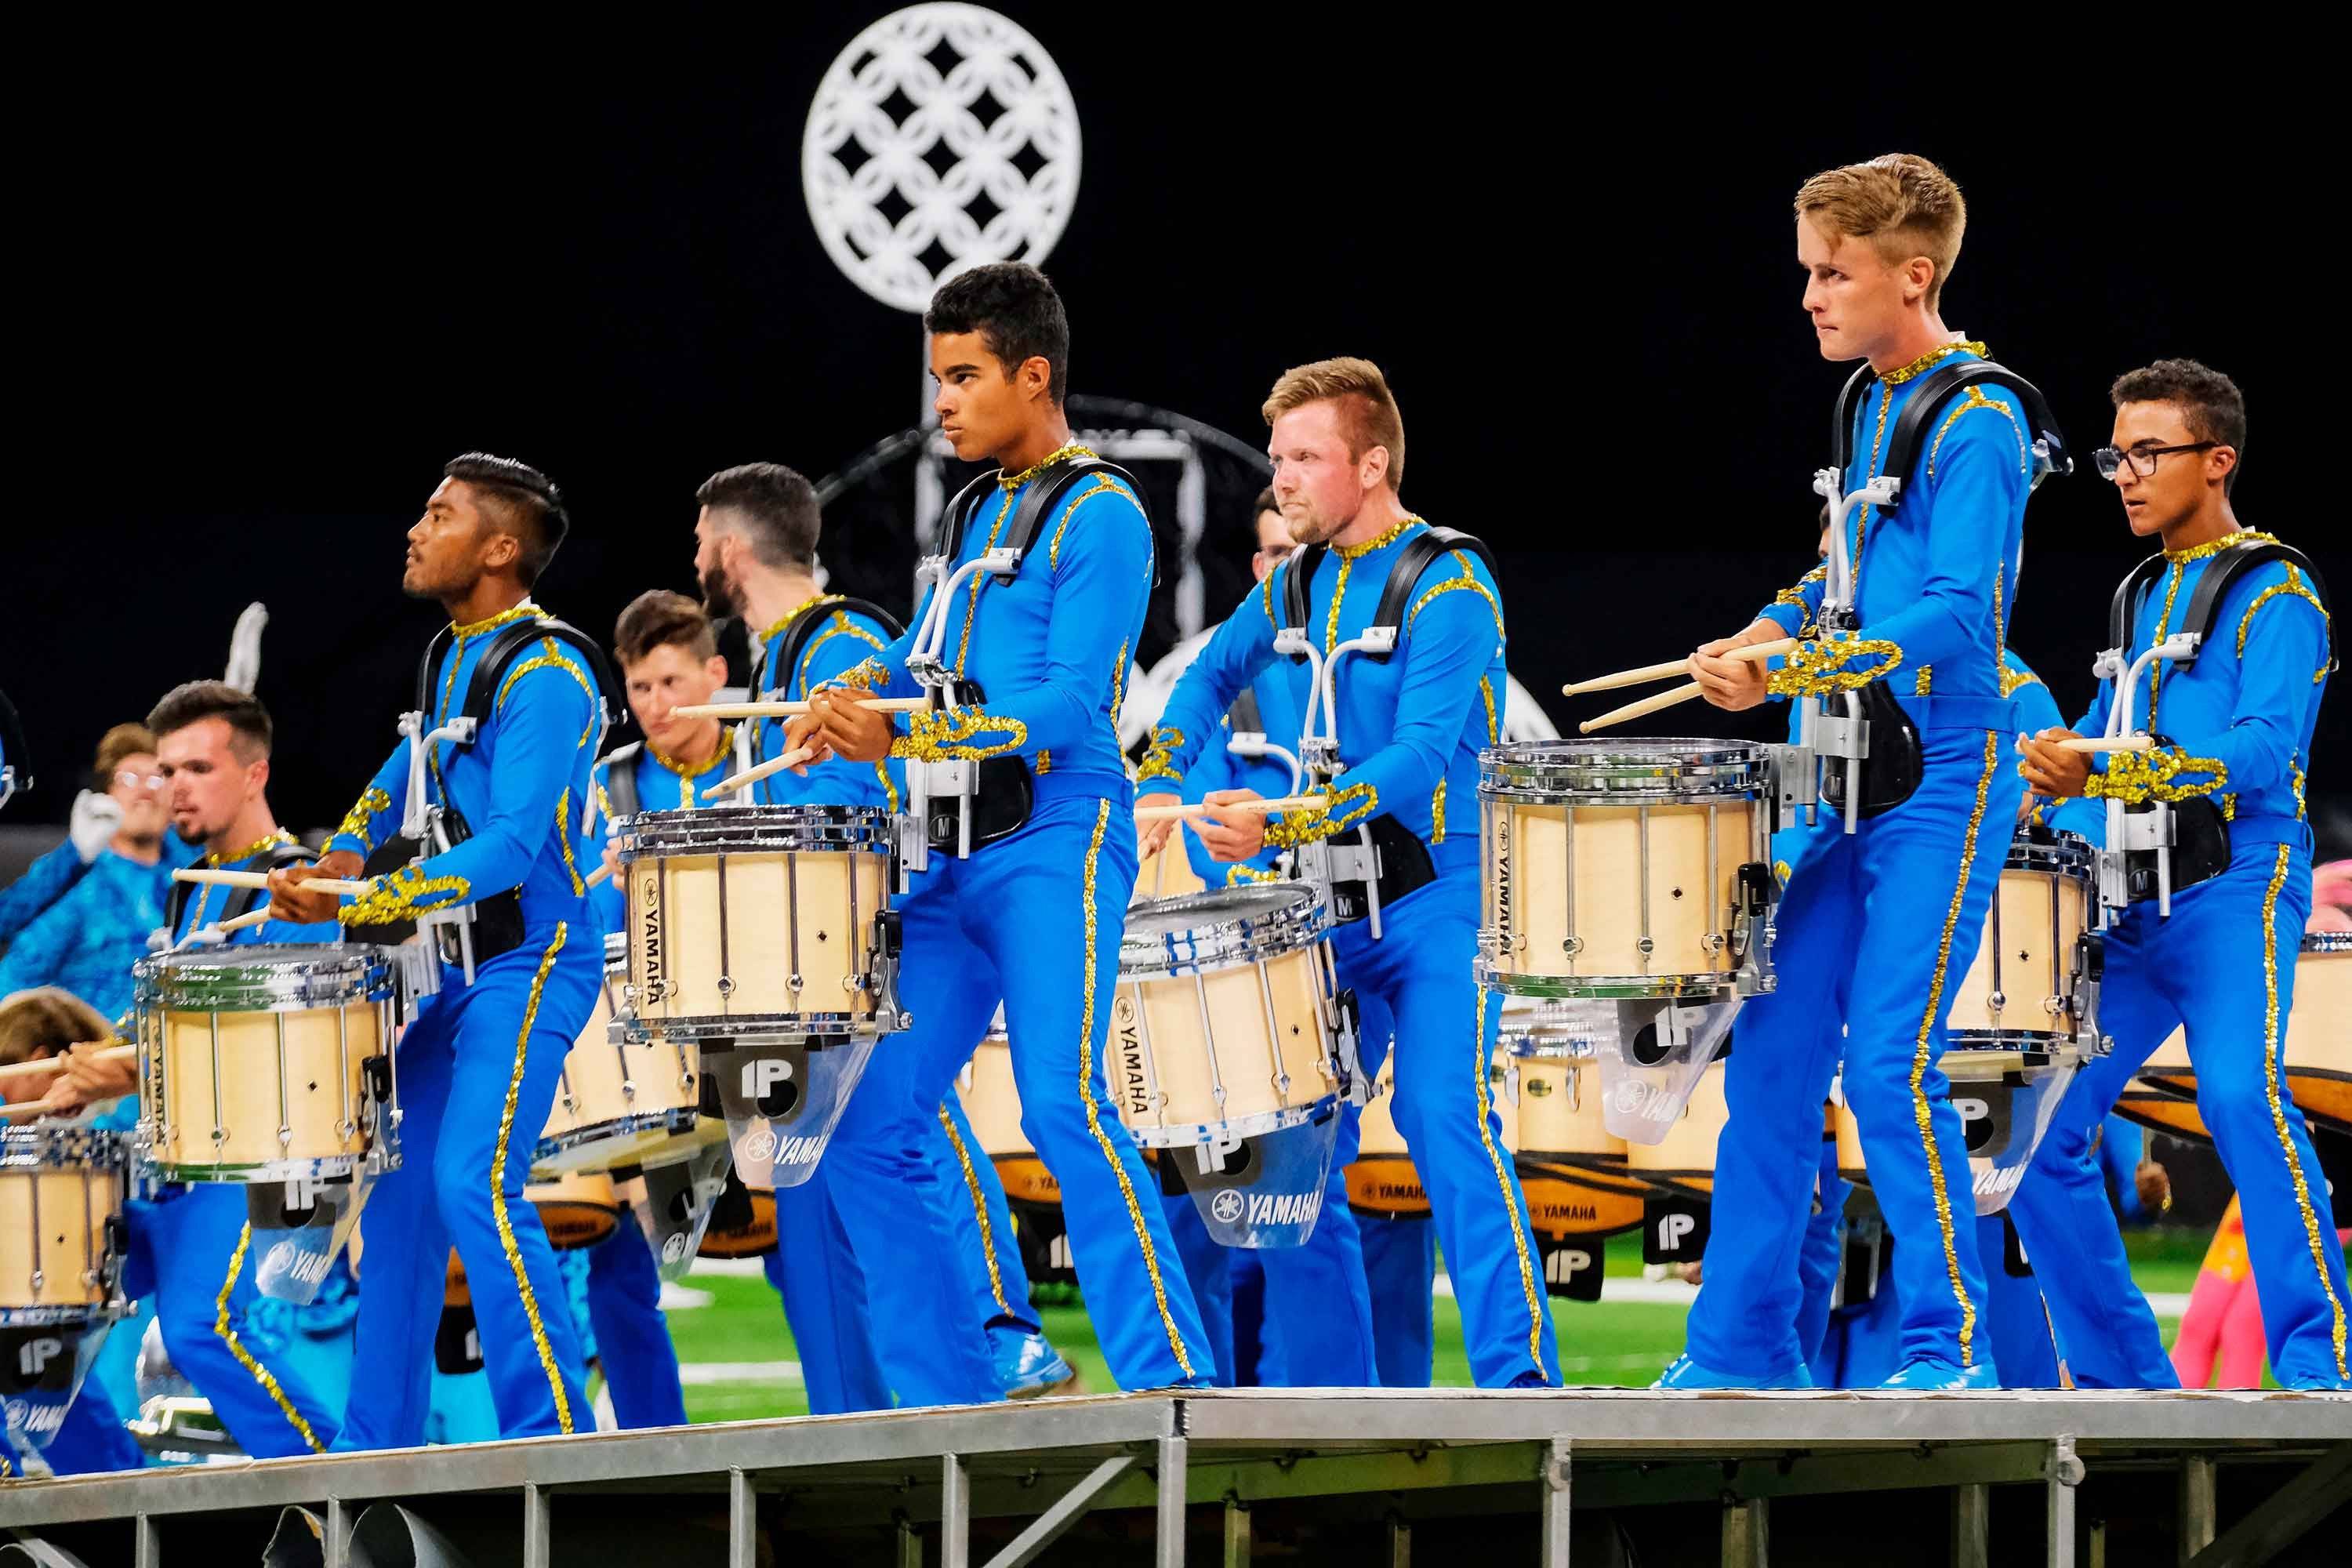 Drum Corps International Marches Back Into Cinemas on July 15 With Five Thrilling Performances